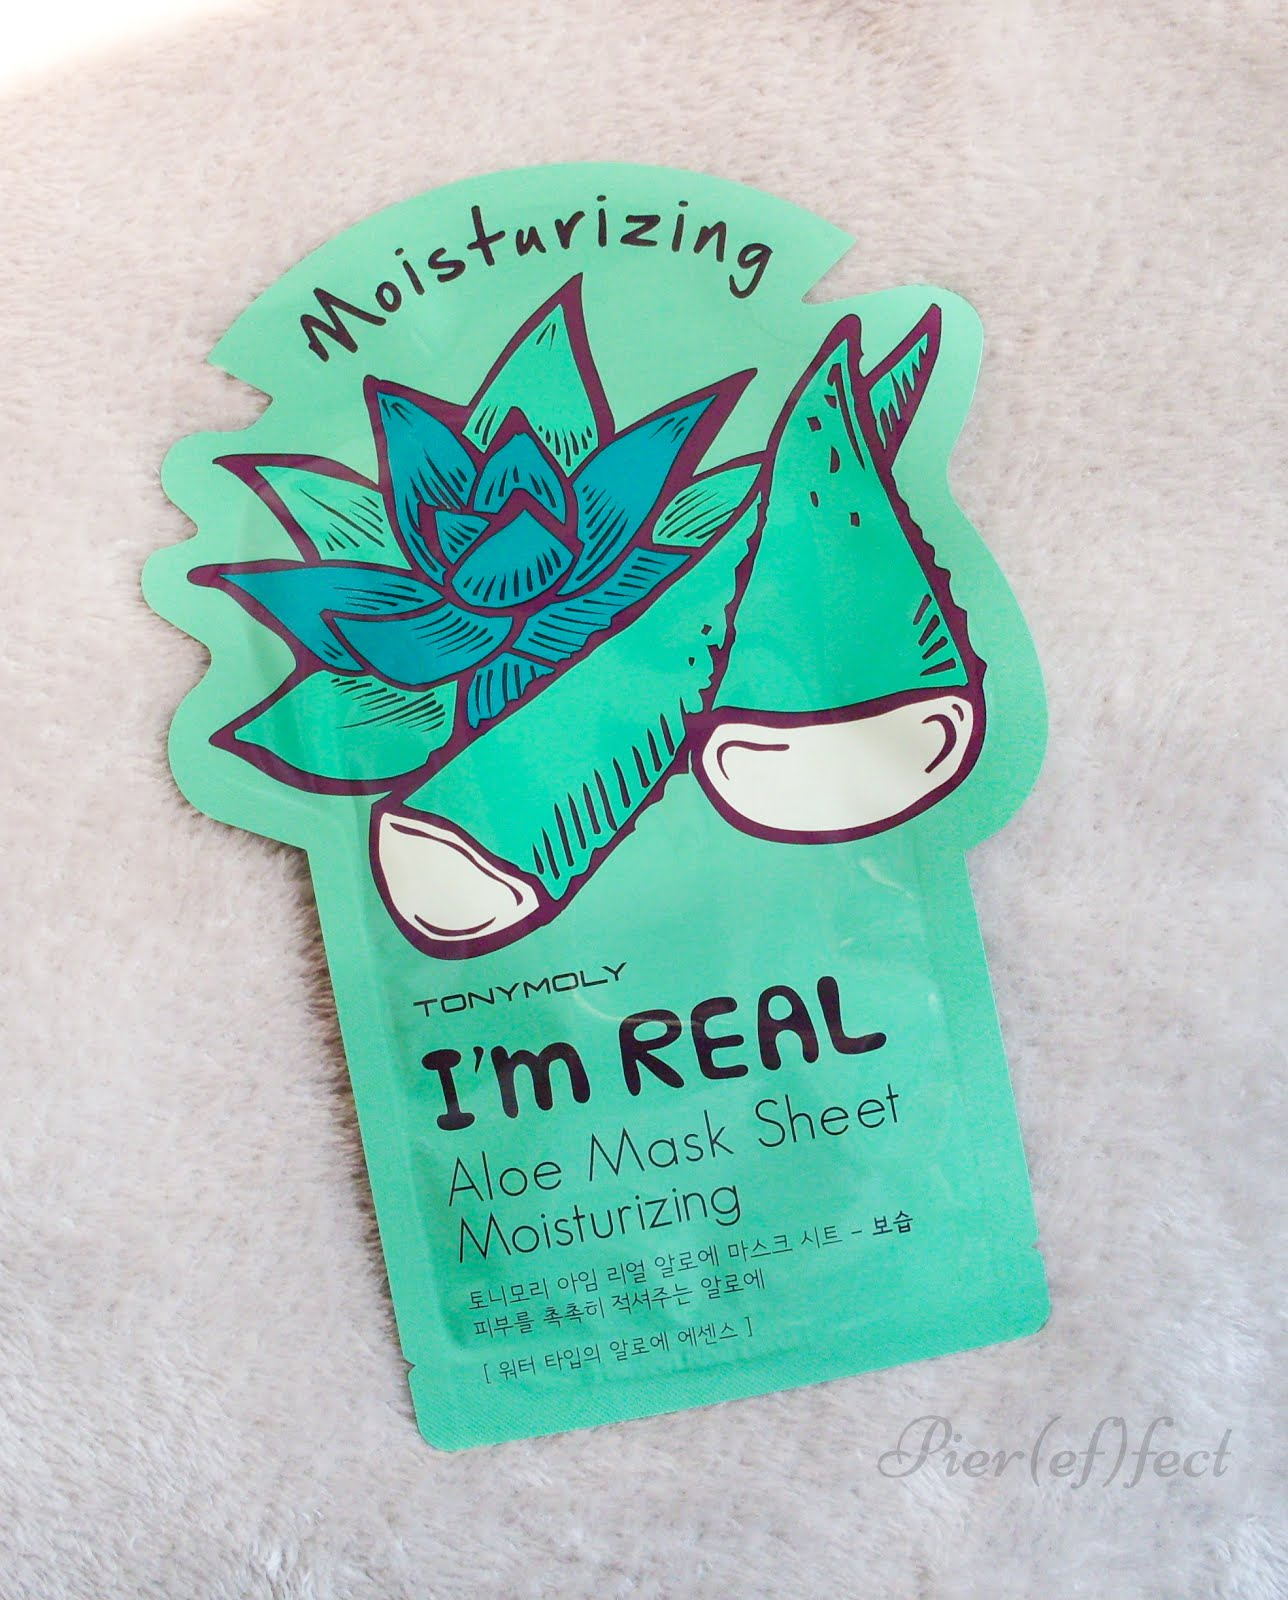 TonyMoly I'm Real Sheet Mask